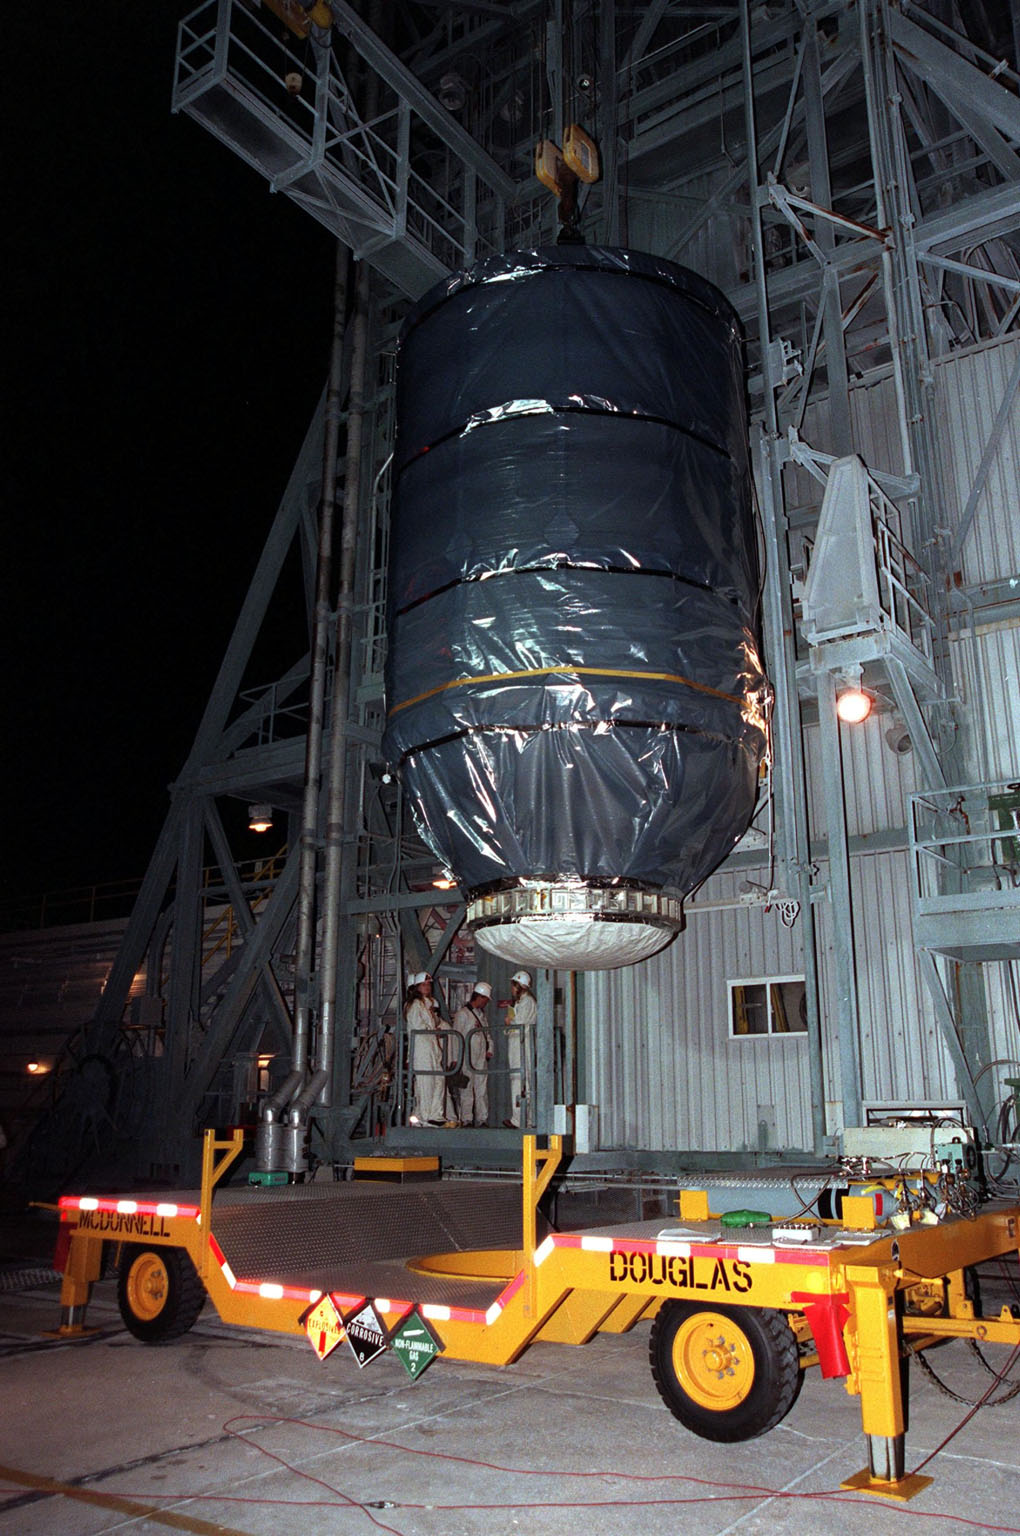 At Launch Pad 17-A, Cape Canaveral Air Station, the Stardust spacecraft, attached to the third stage of a Boeing Delta II rocket, is lifted up the launch tower. The second and third stages of the rocket will be mated next as preparations continue for liftoff on Feb. 6. Stardust is destined for a close encounter with the comet Wild 2 in January 2004. Using a silicon-based substance called aerogel, Stardust will capture comet particles flying off the nucleus of the comet. The spacecraft also will bring back samples of interstellar dust. These materials consist of ancient pre-solar interstellar grains and other remnants left over from the formation of the solar system. Scientists expect their analysis to provide important insights into the evolution of the sun and planets and possibly into the origin of life itself. The collected samples will return to Earth in a sample return capsule to be jettisoned as Stardust swings by Earth in January 2006